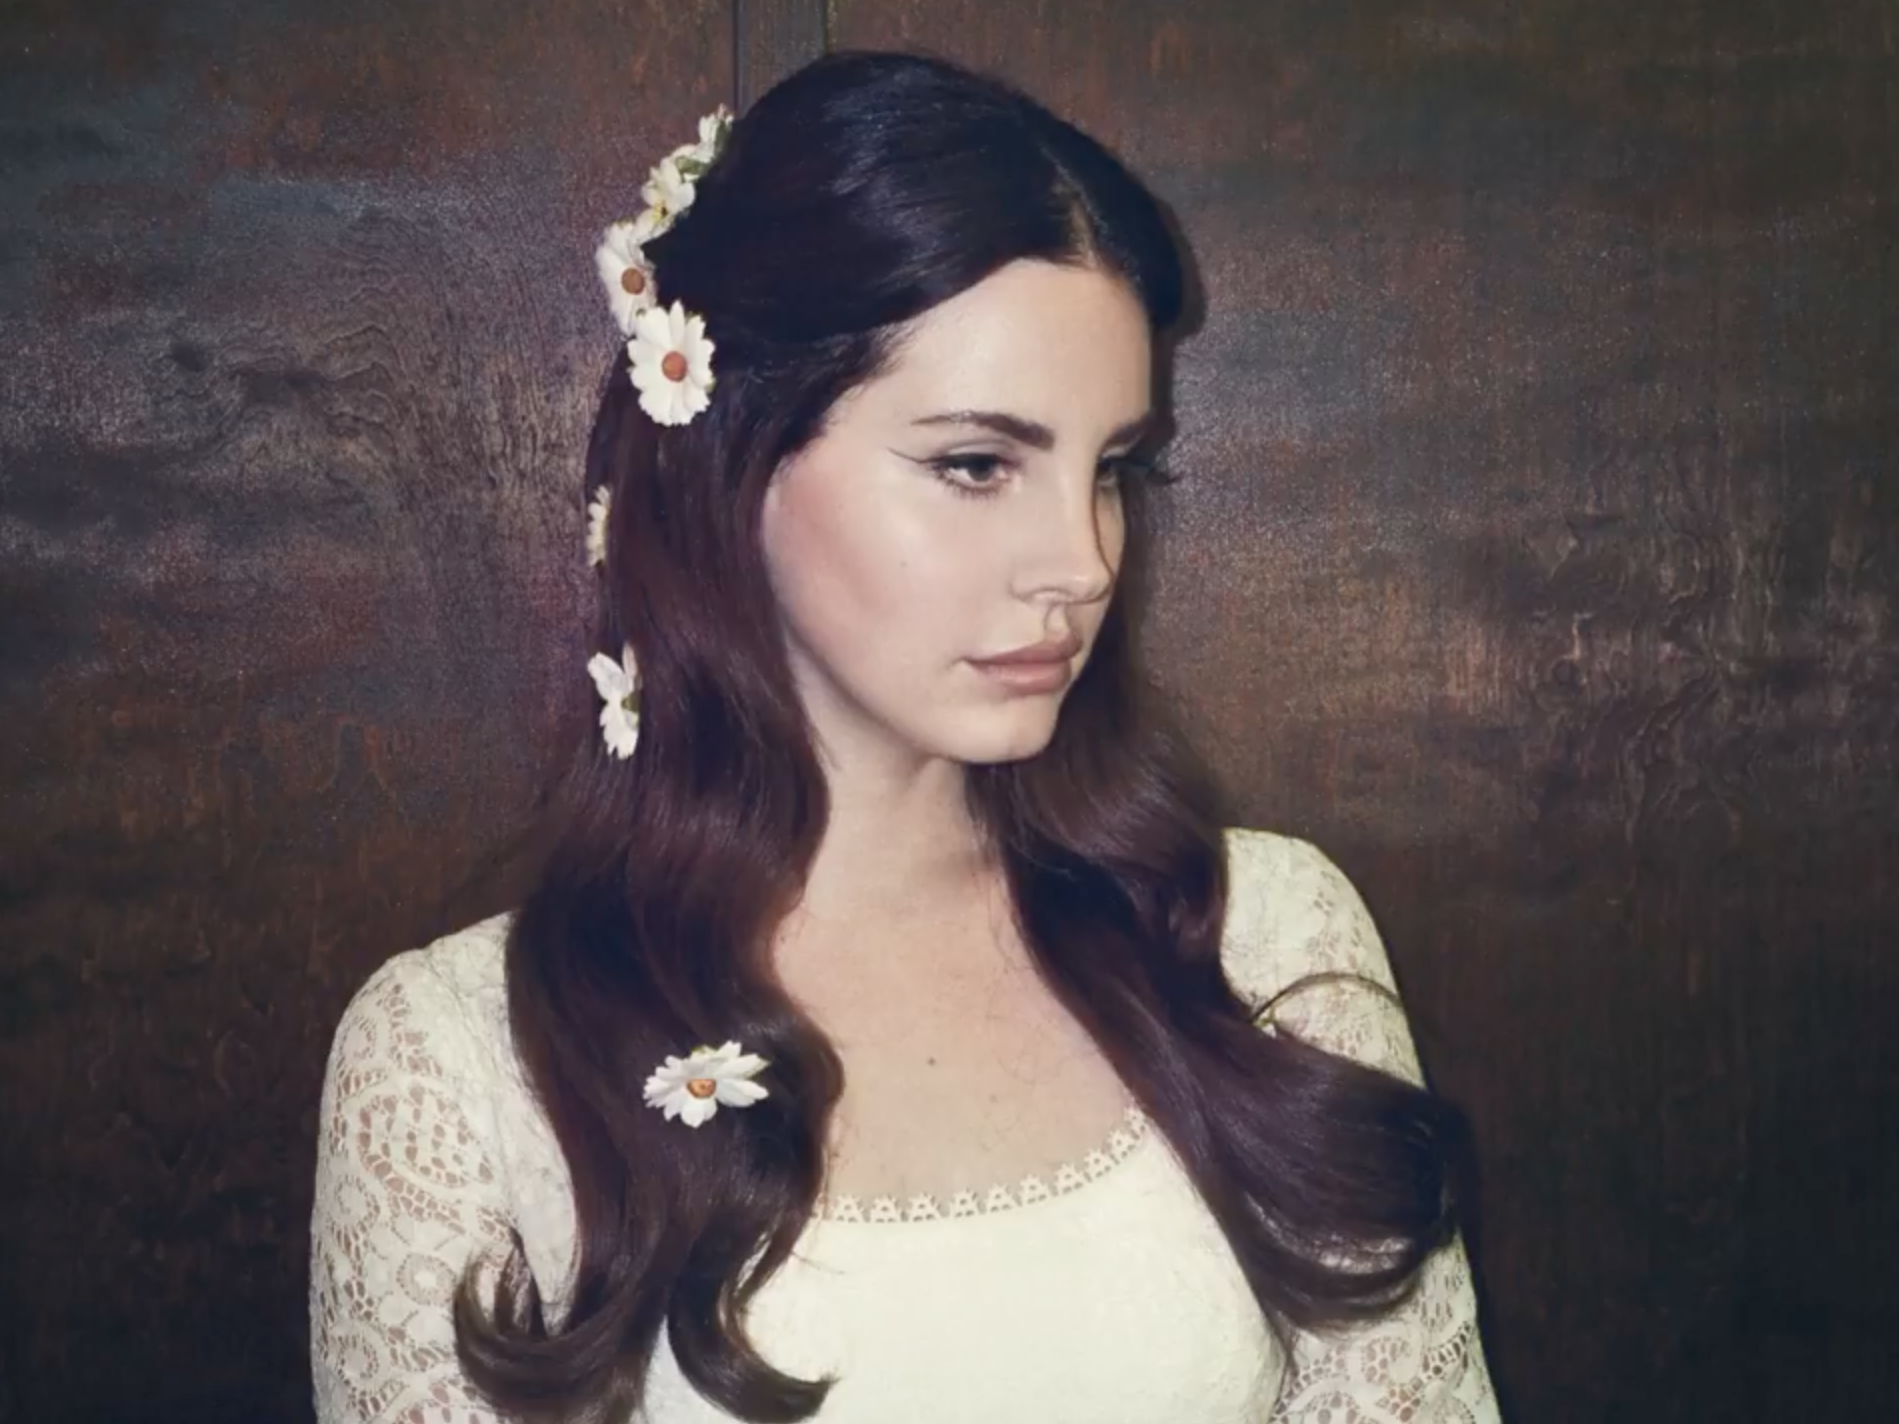 Listen to Lana Del Rey's new song 'Coachella - Woodstock in My Mind'